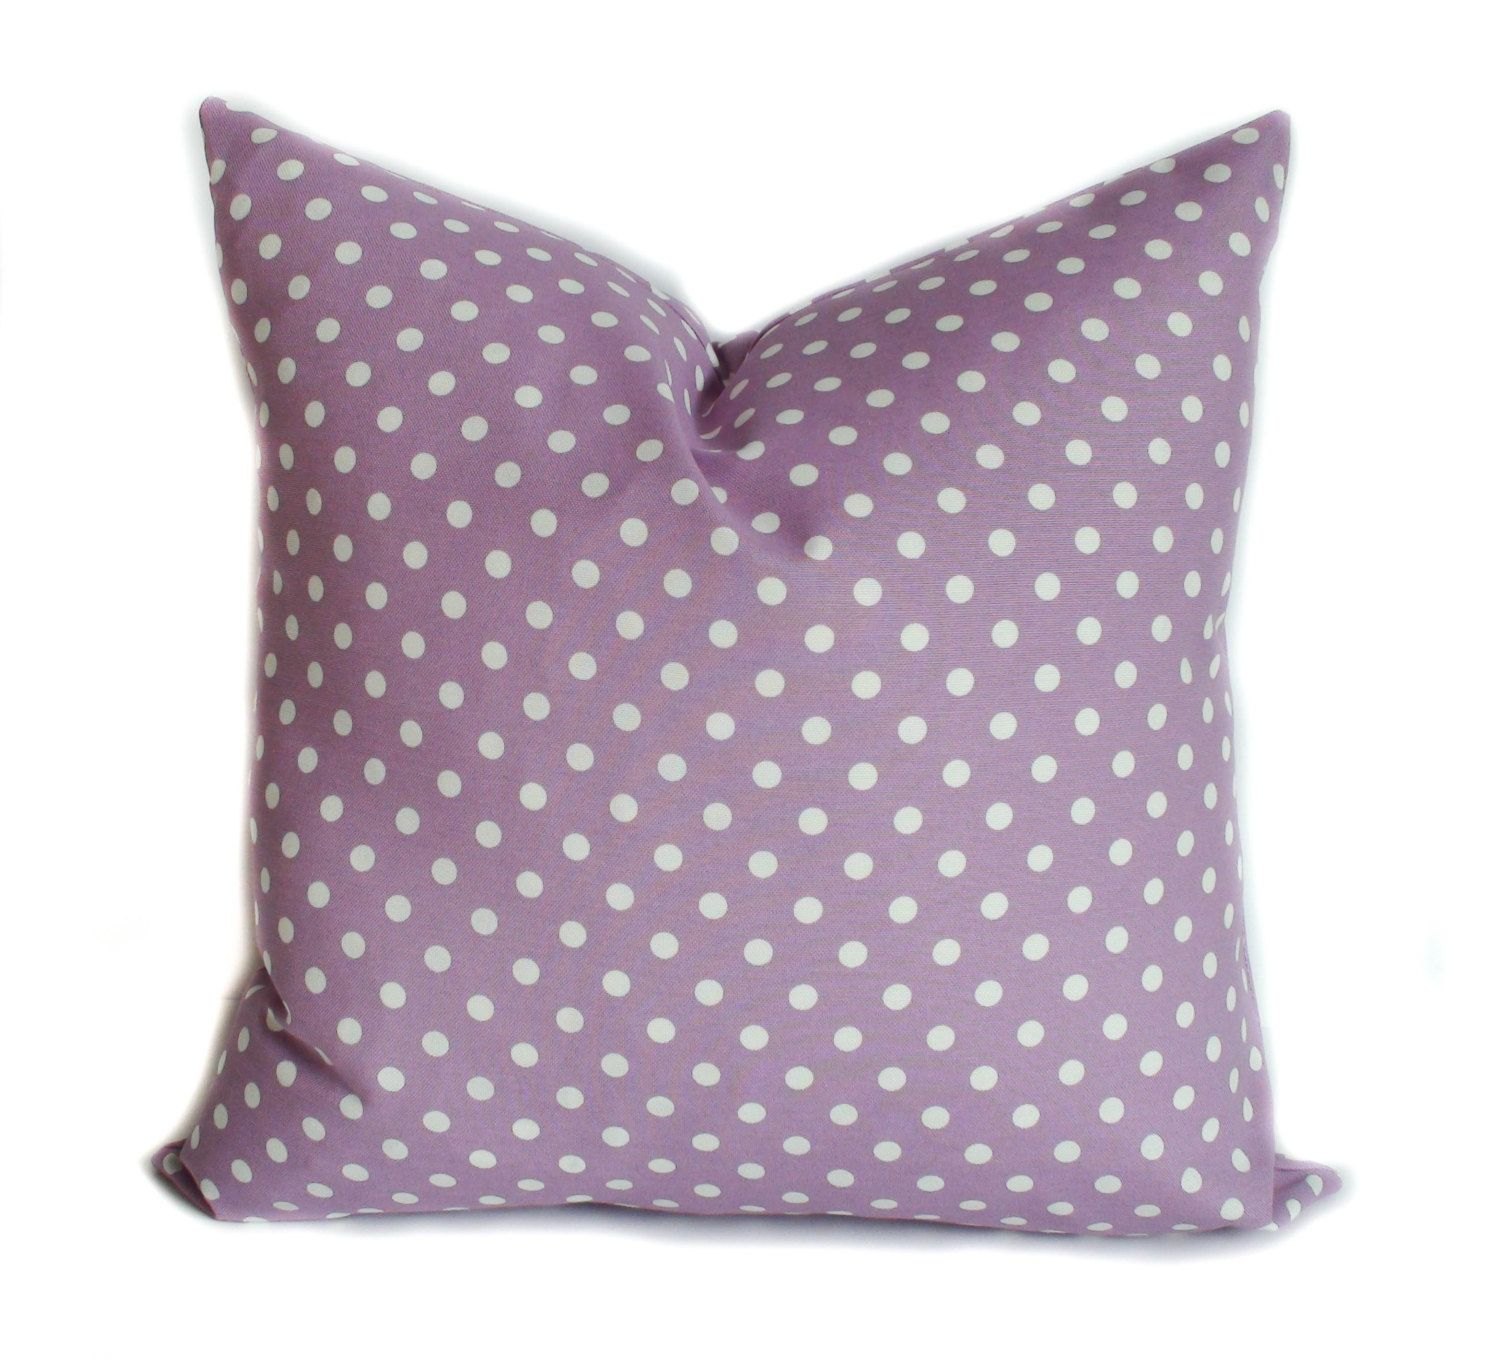 brinjal paro sale bixby larger decorative robshaw ball on john pillows pillow purple image view